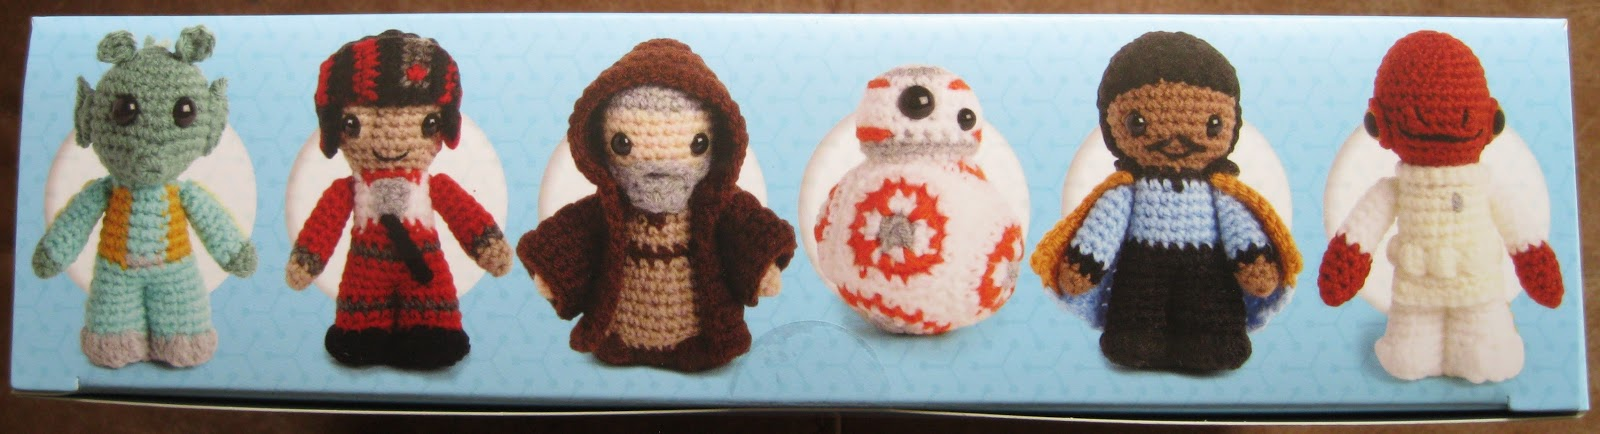 Lucyravenscar crochet creatures star war even more crochet is here inside the box you get the book with all twelve patterns and then the yarn and everything else you need to make the jawa and bb 8 that includes a crochet ccuart Images